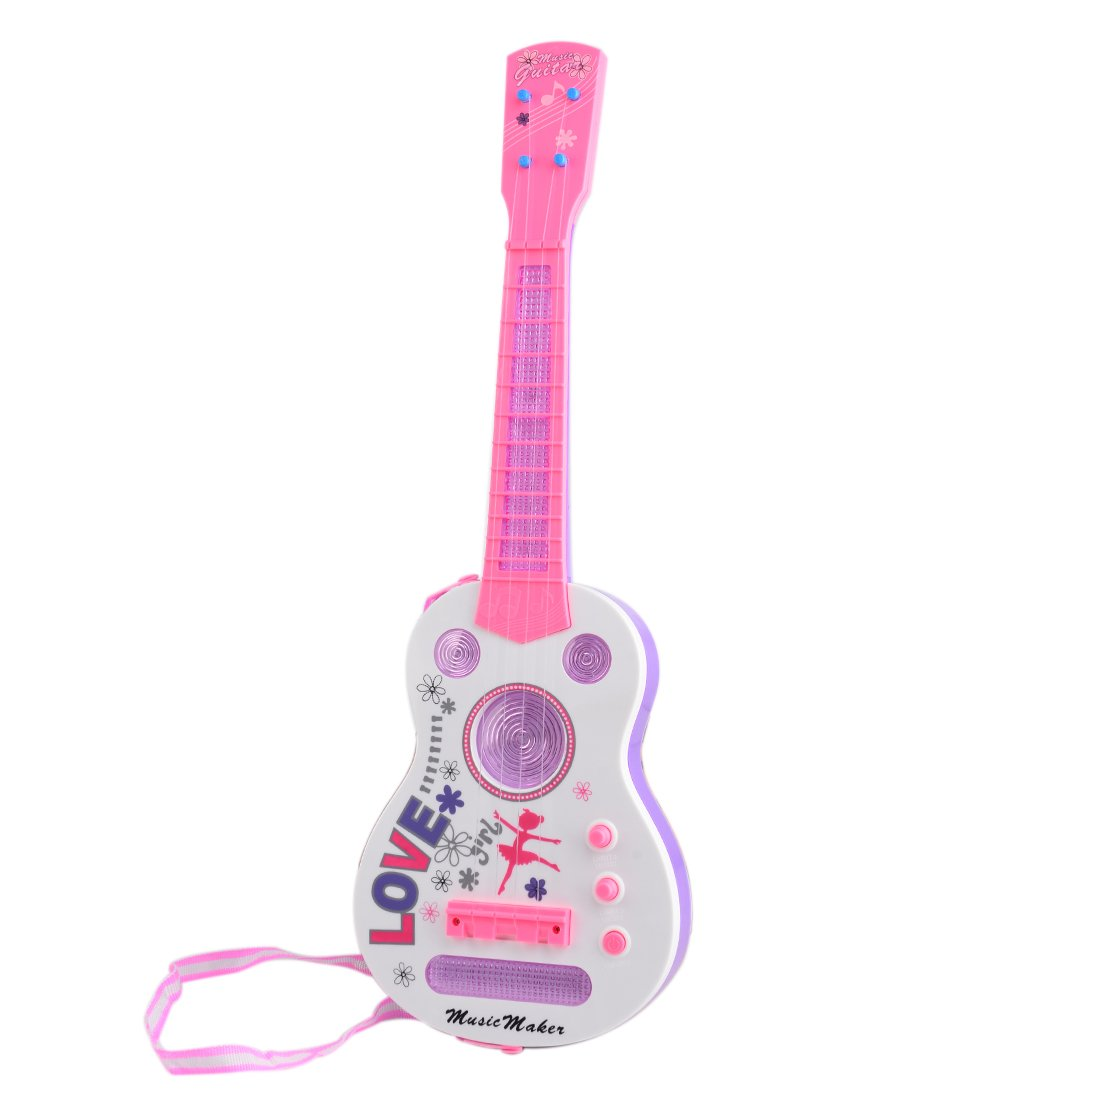 RuiyiF Guitar for Toddler Kids Beginners Toy Guitar for Girls 20Inch - Pink